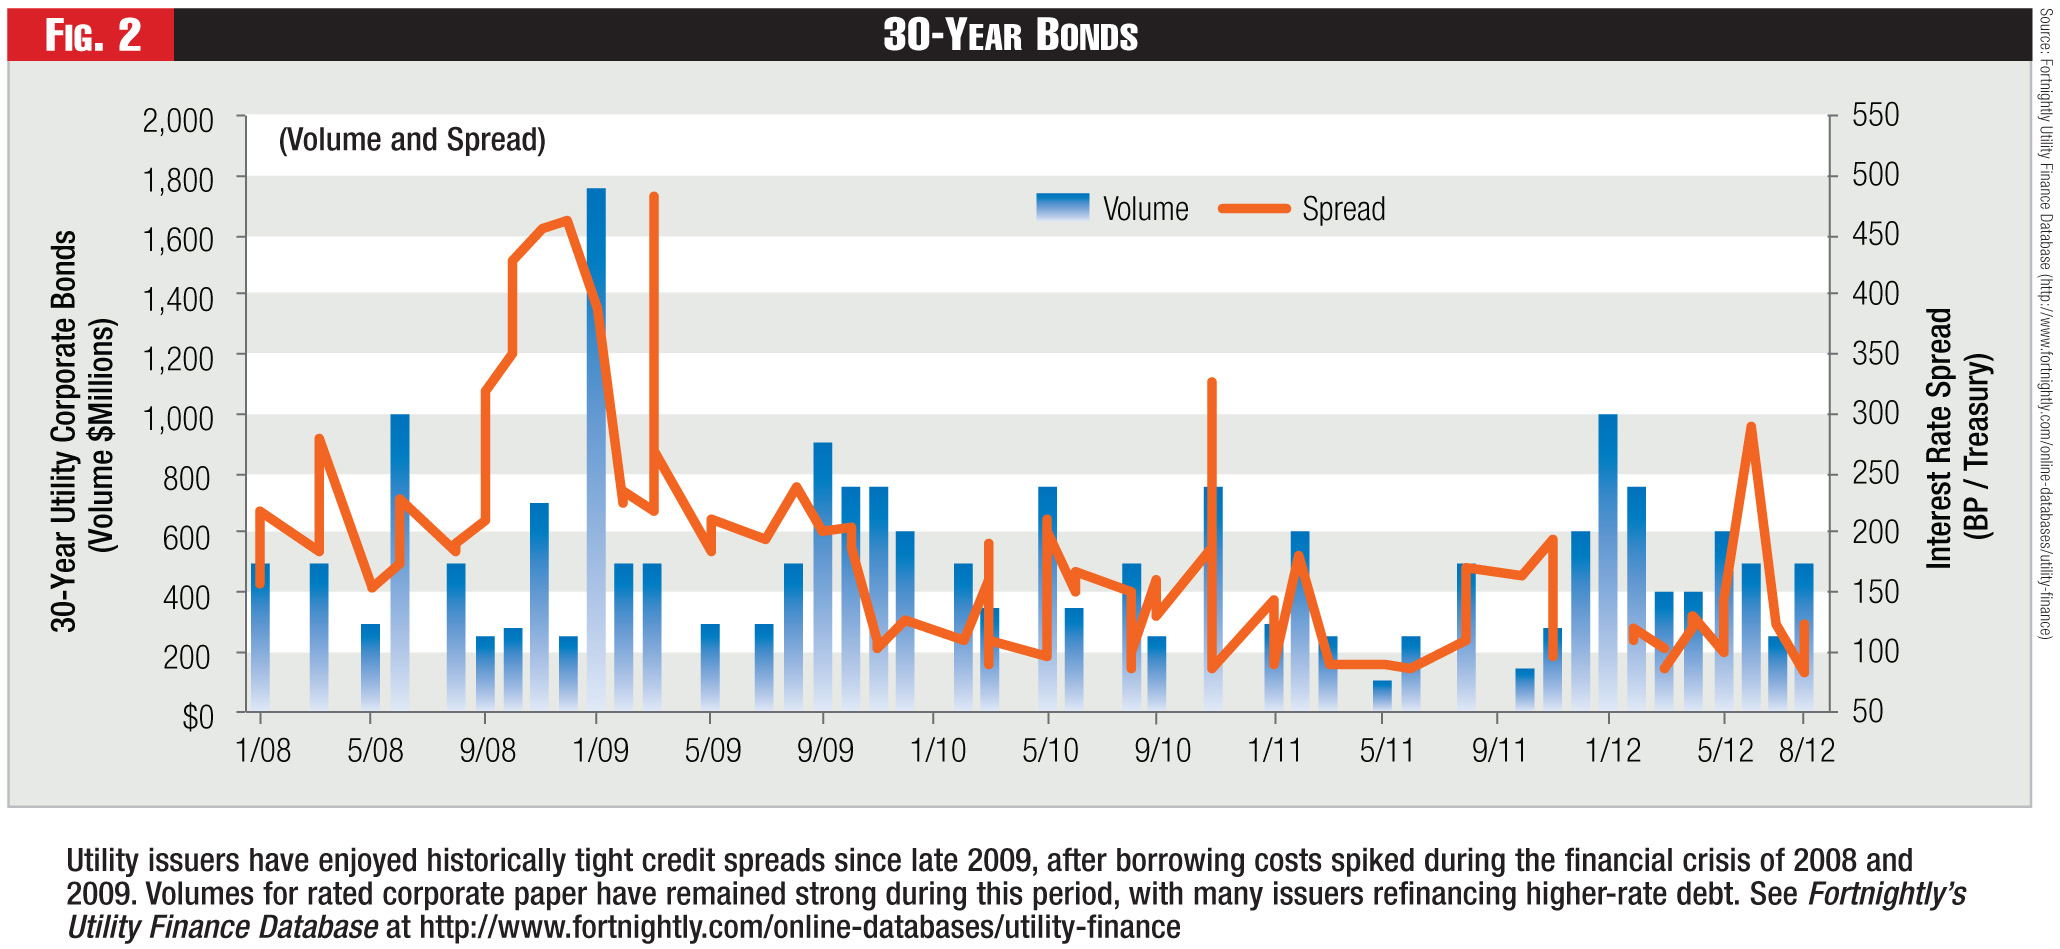 Figure 2 - 30-Year Bonds